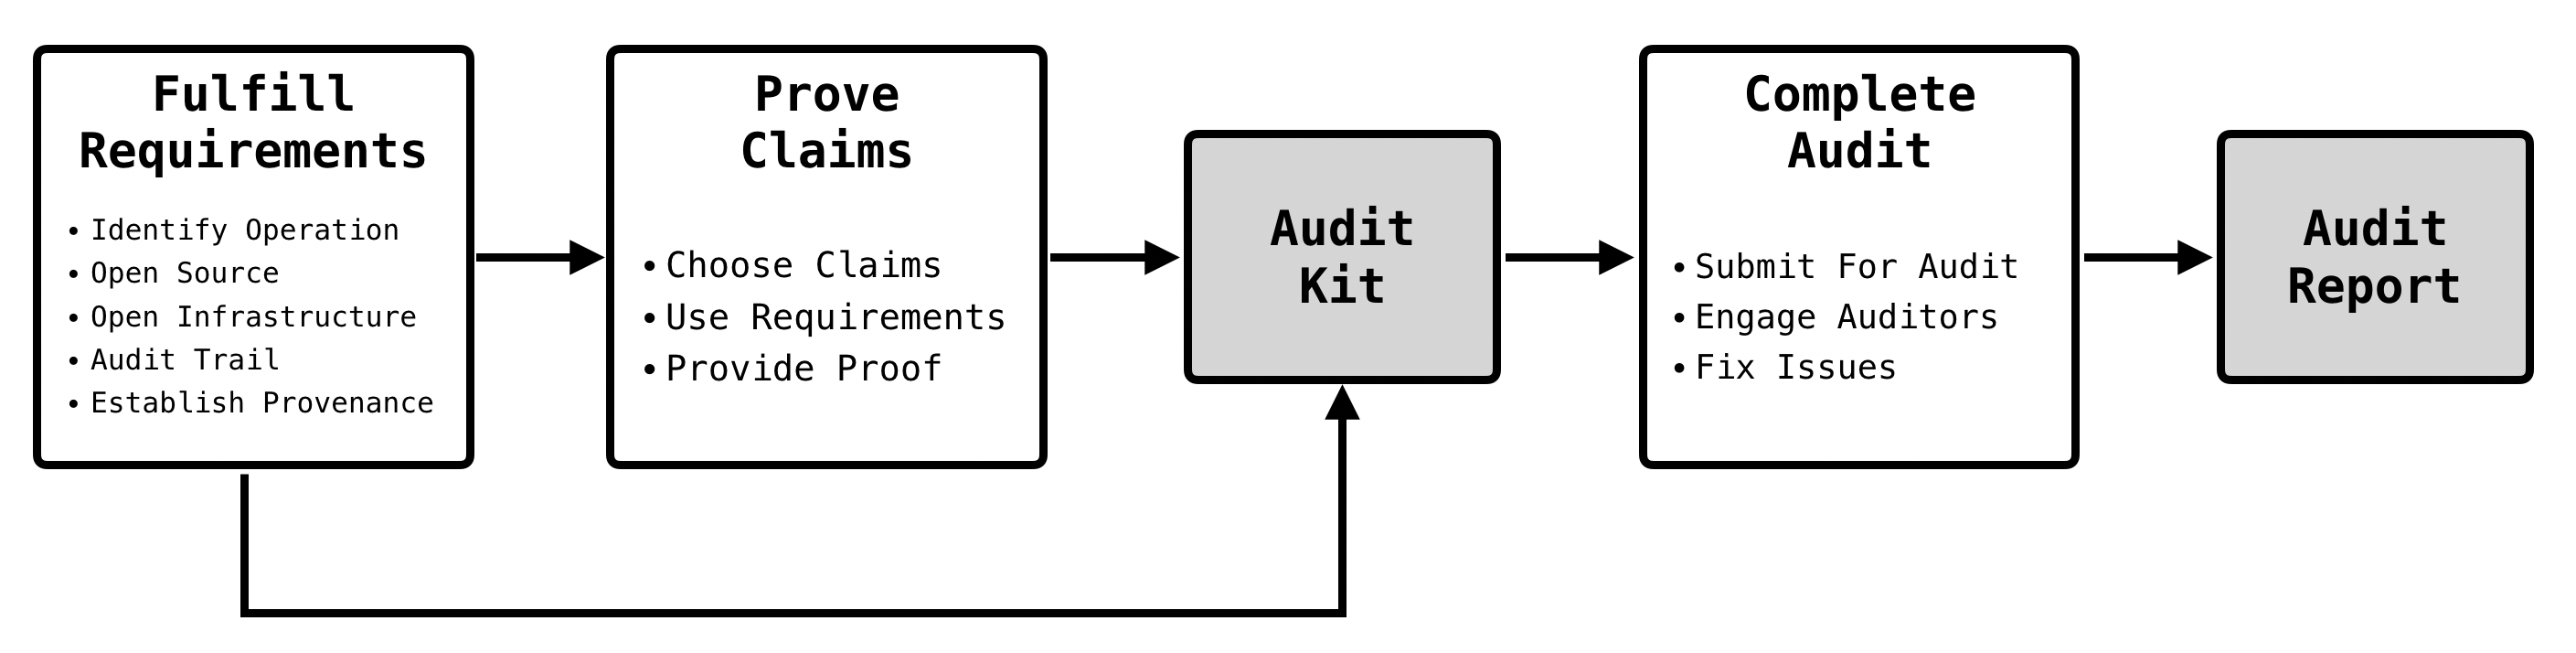 Diagram of the Openly Operated process